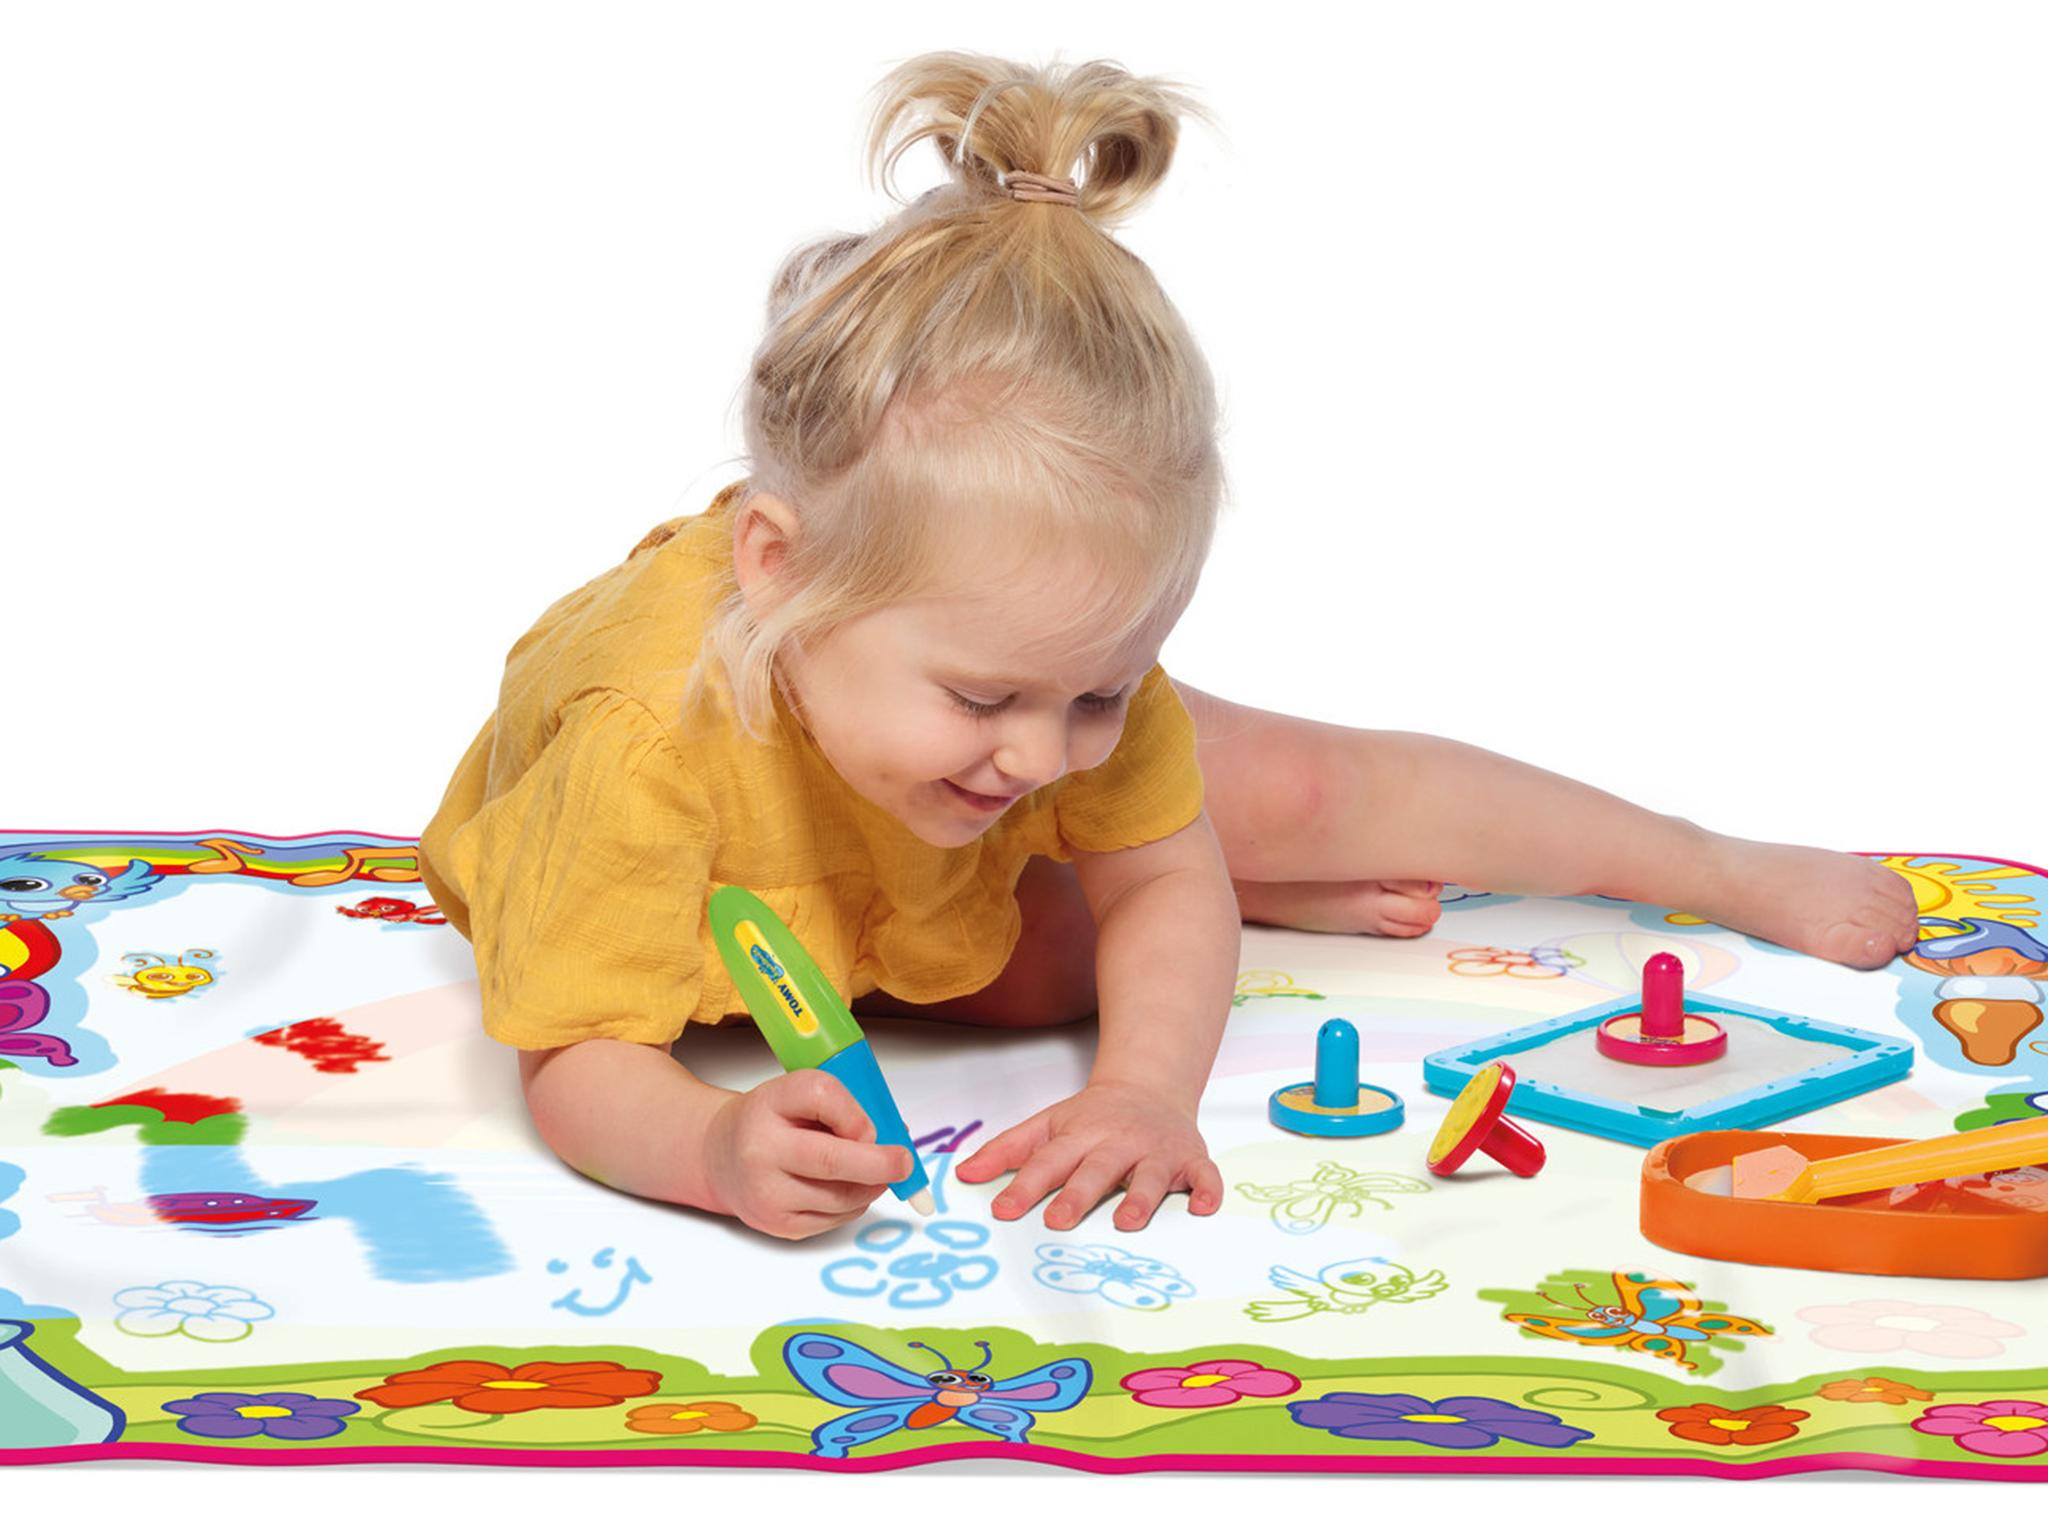 Best Gift For 2 Year Olds Guide From Books To Building Games Fun Learning Tools